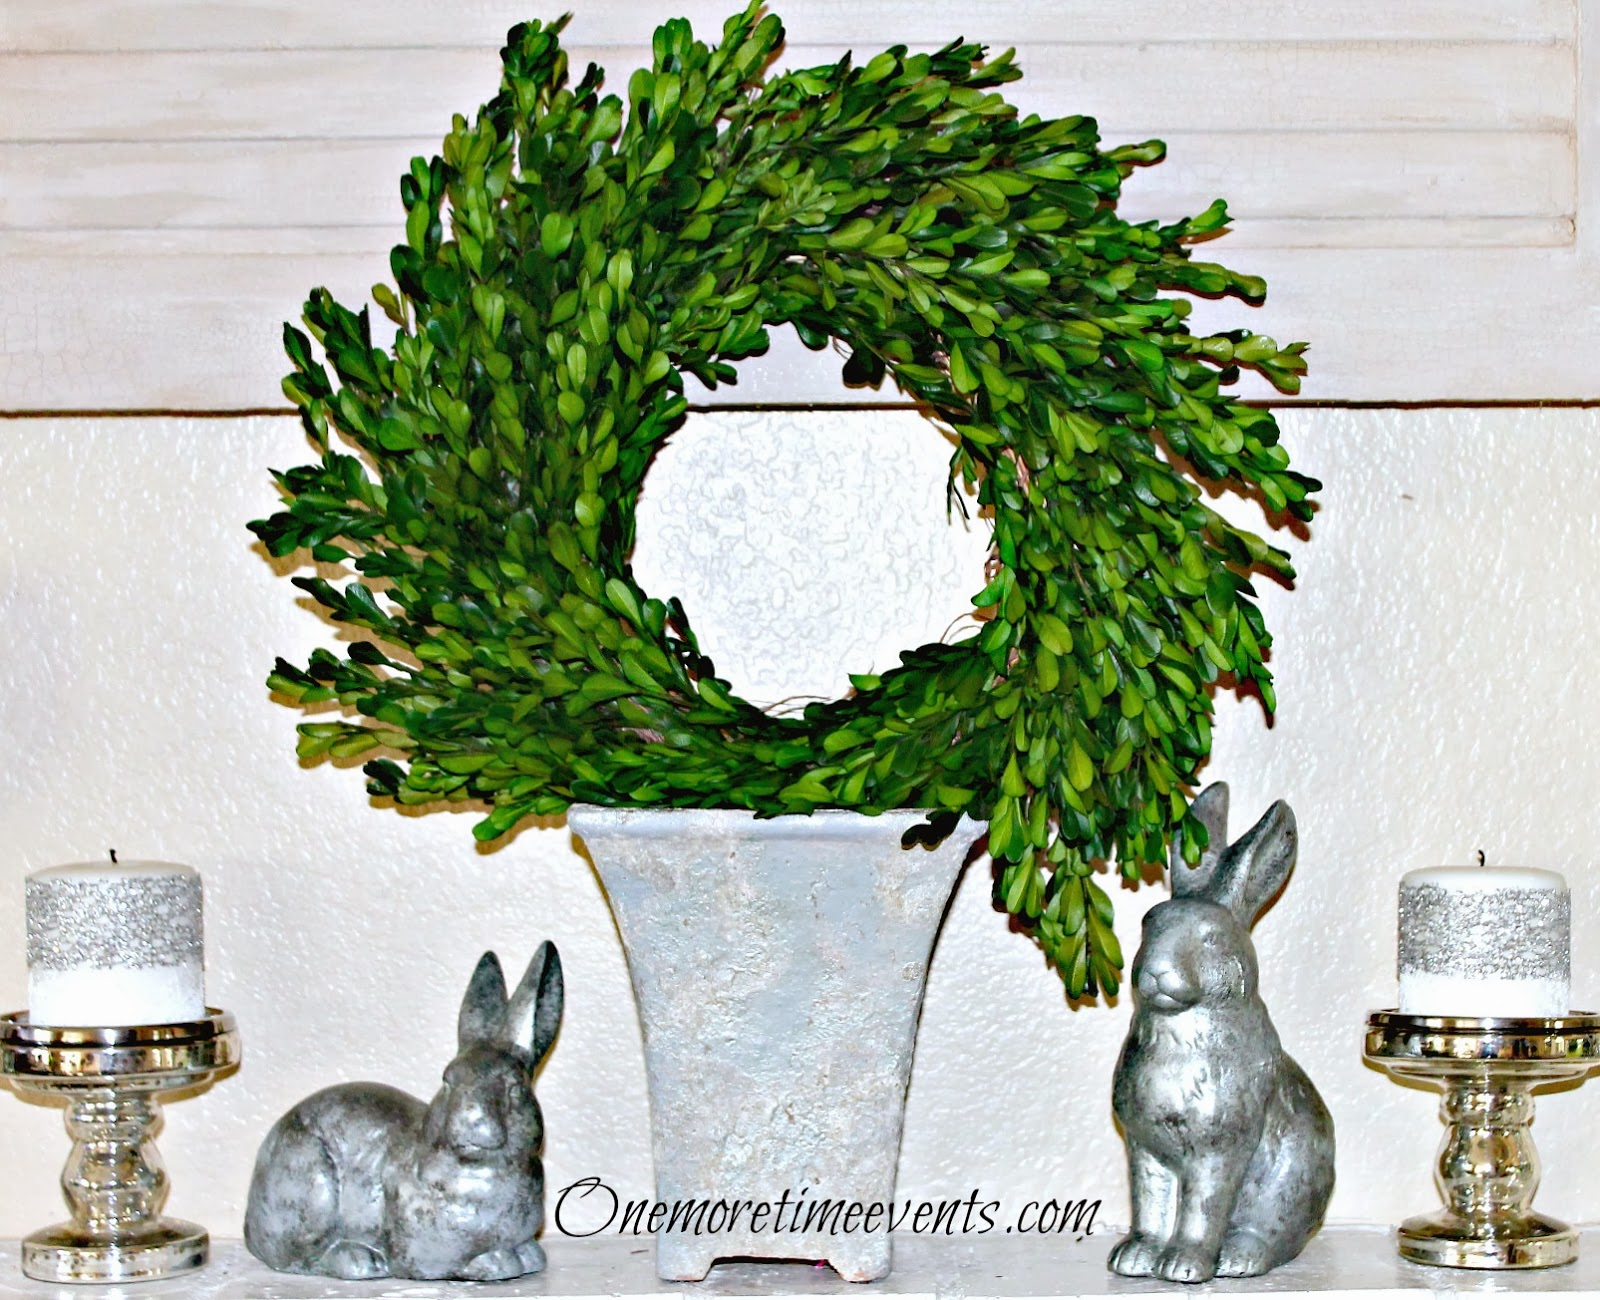 ONE MORE TIME EVENTS - SPRING MANTEL